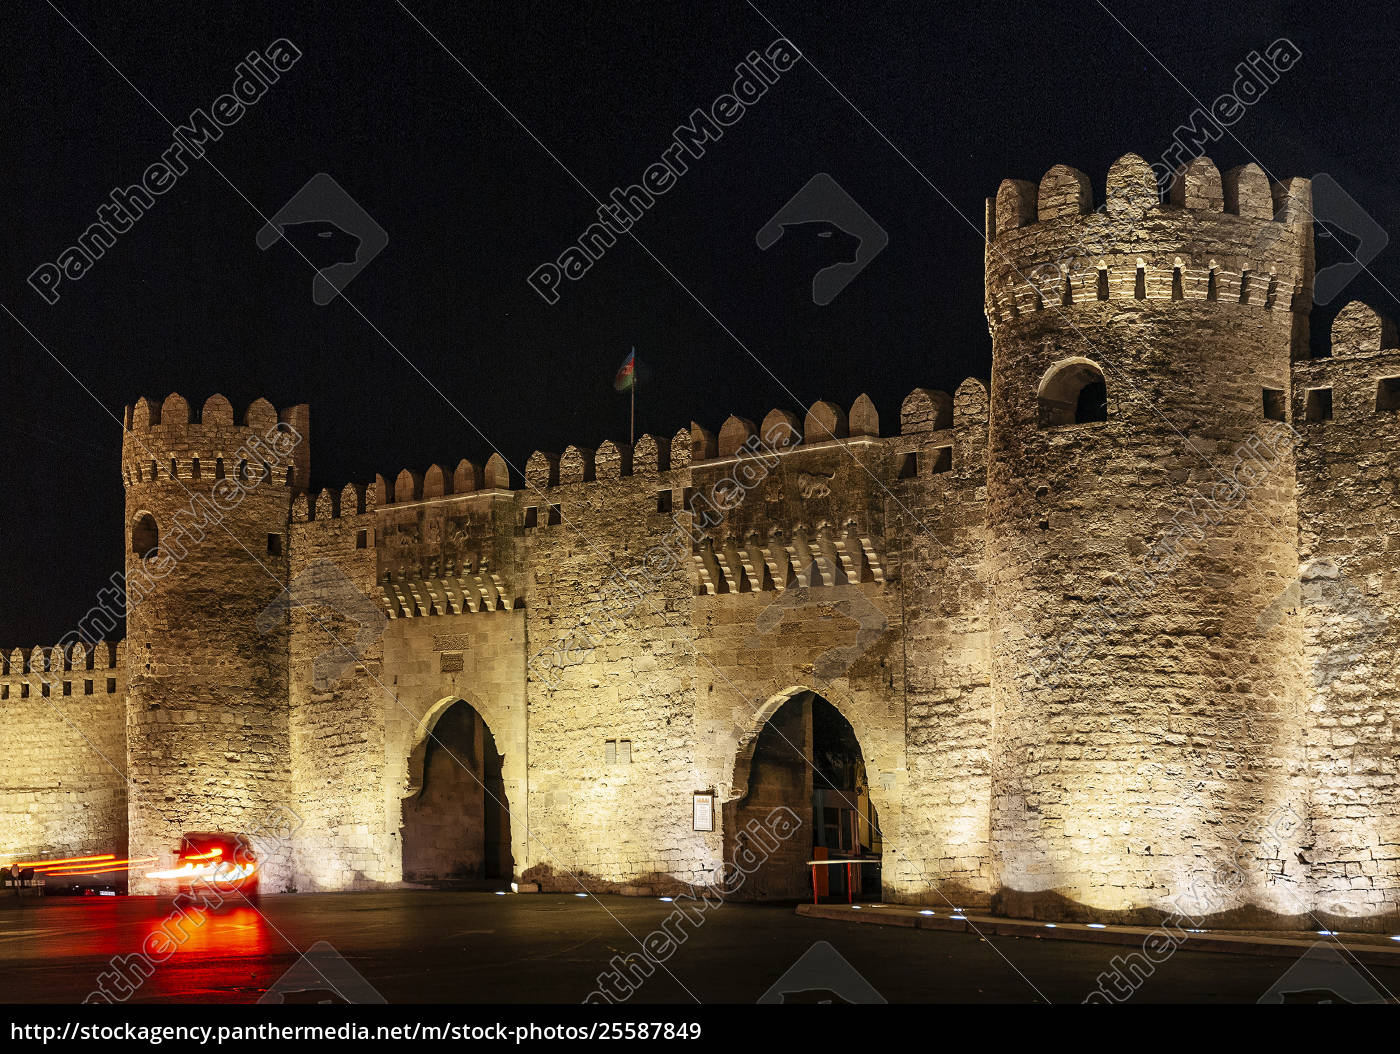 old, city, fortress, gates, landmark, in - 25587849